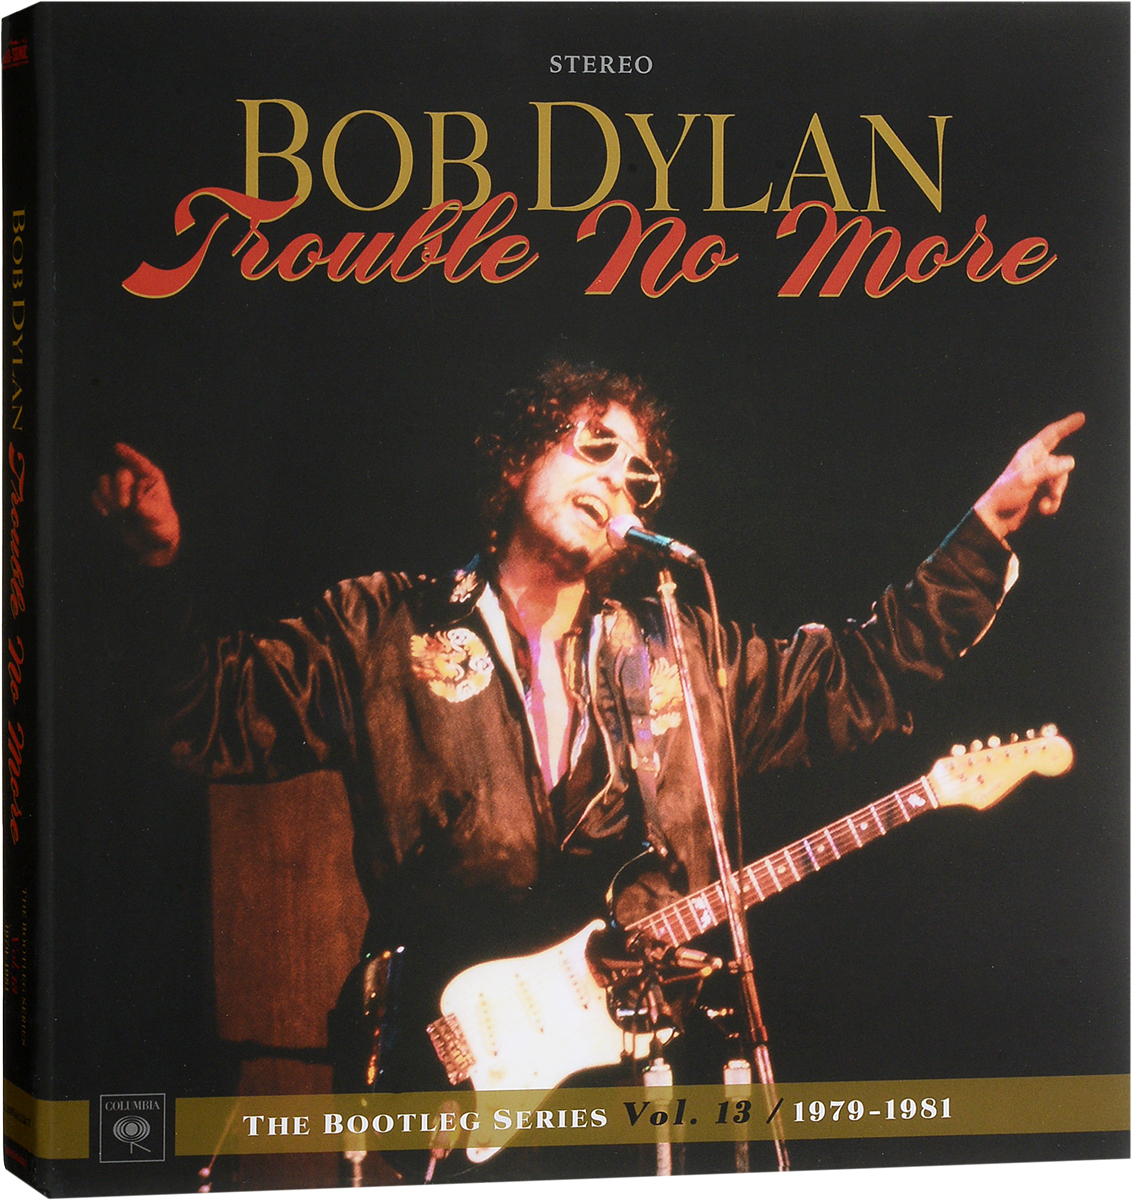 Bob Dylan. Trouble No More: The Bootleg Series Vol. 13 / 1979-1981 (4 LP + 2 CD)